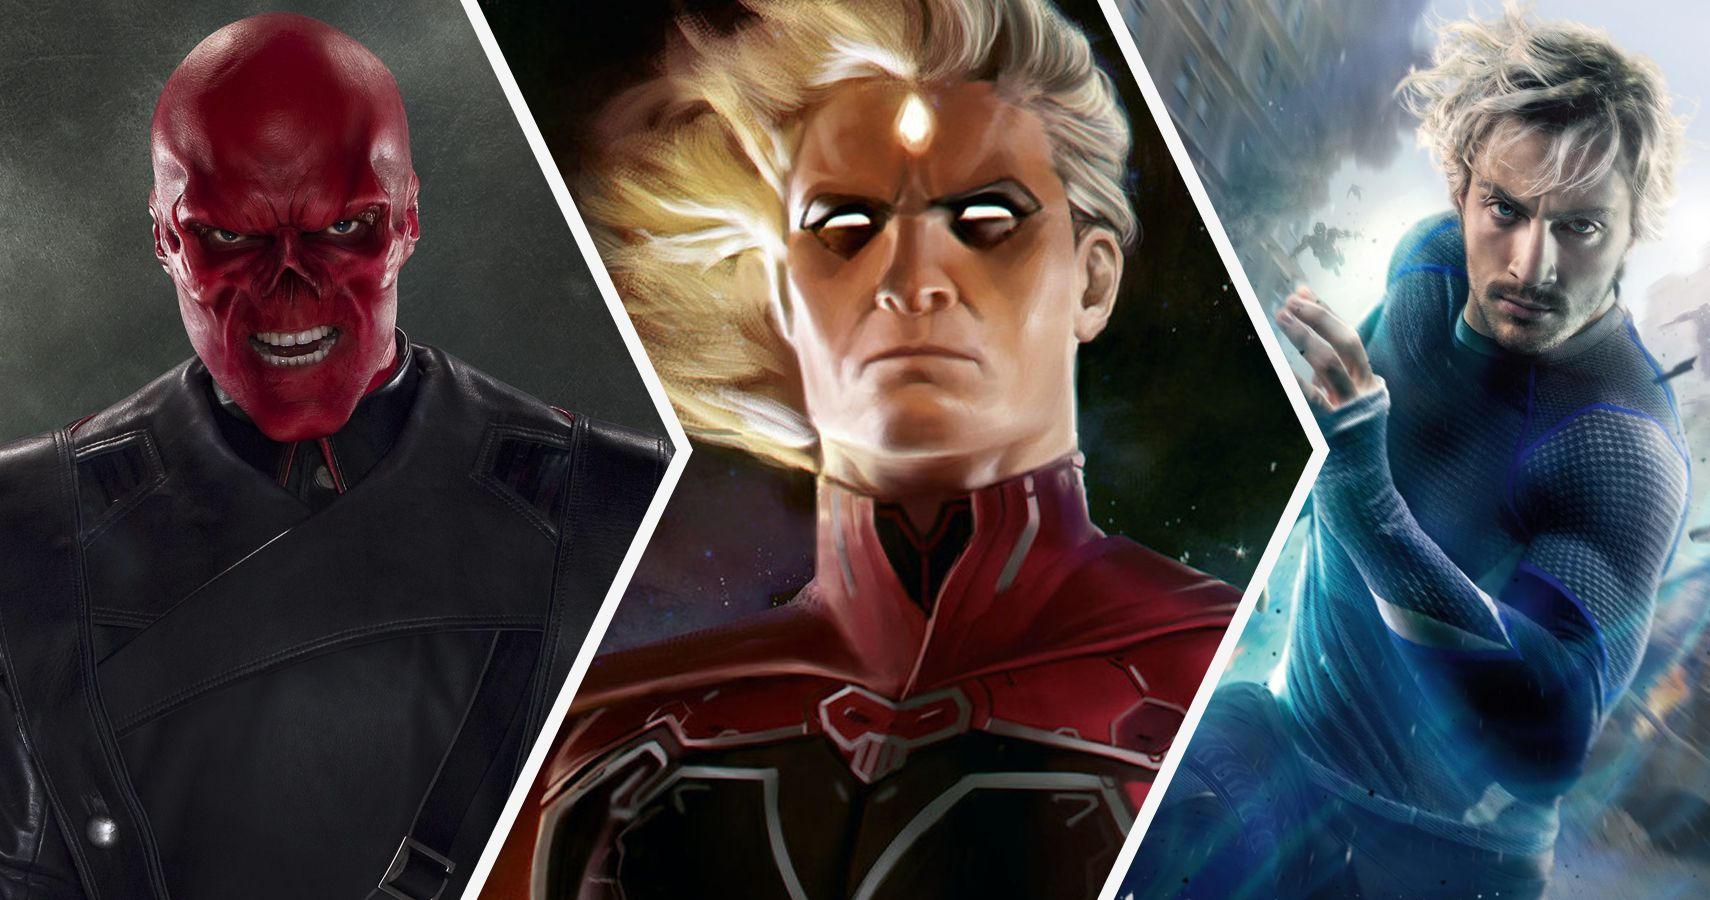 Infinity War: 8 Characters Rumored to Return (And 8 Who Absolutely Should Not)